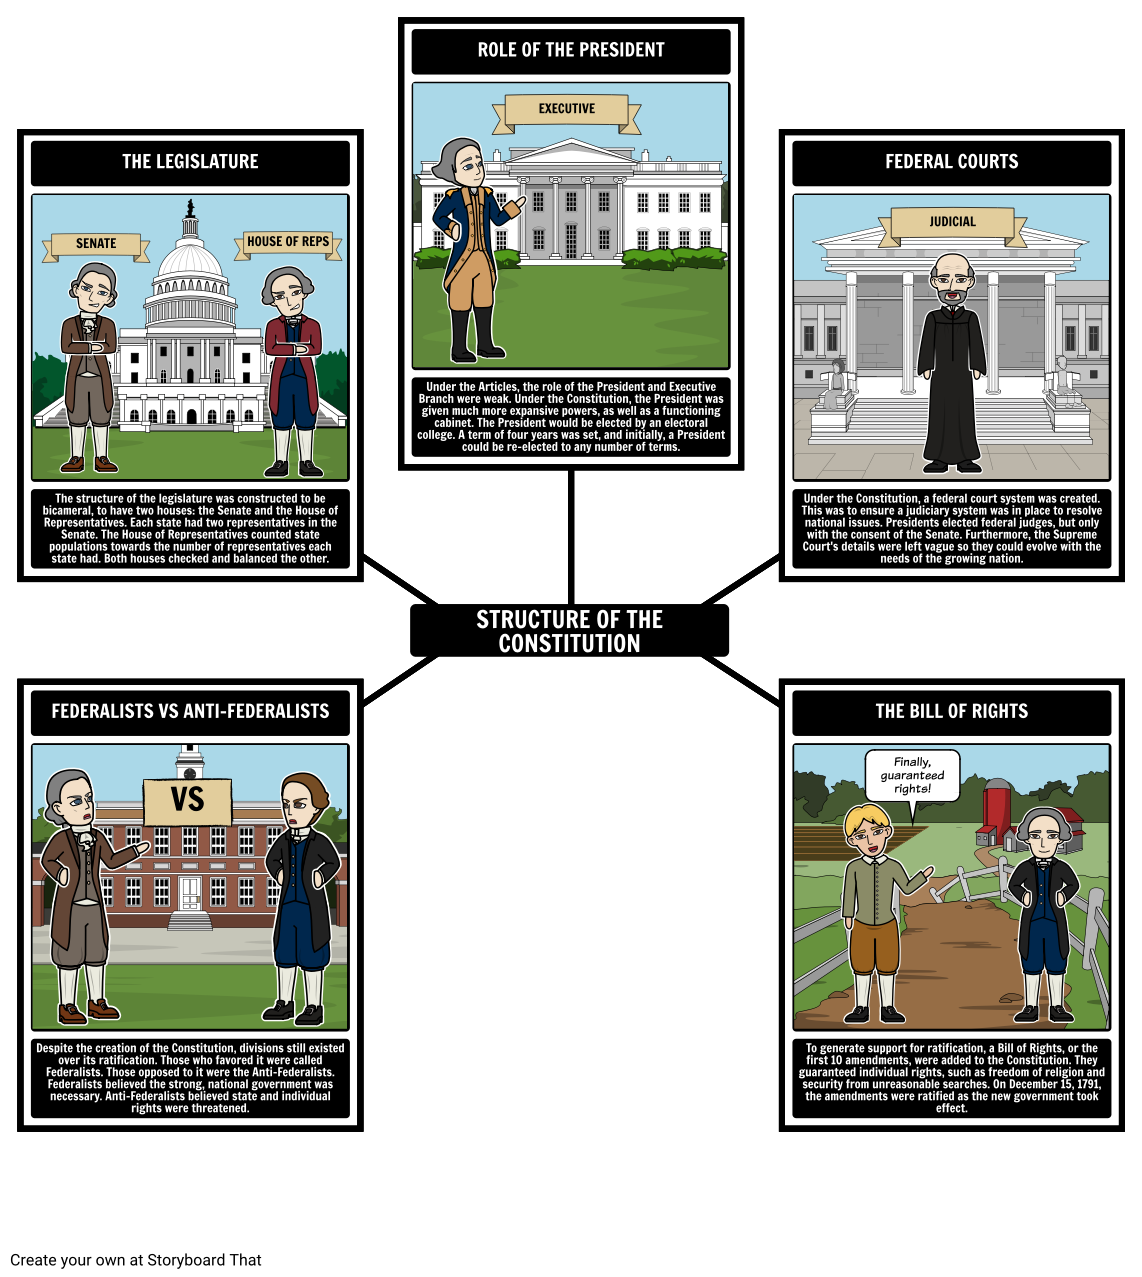 federalism structure of the constitution storyboard